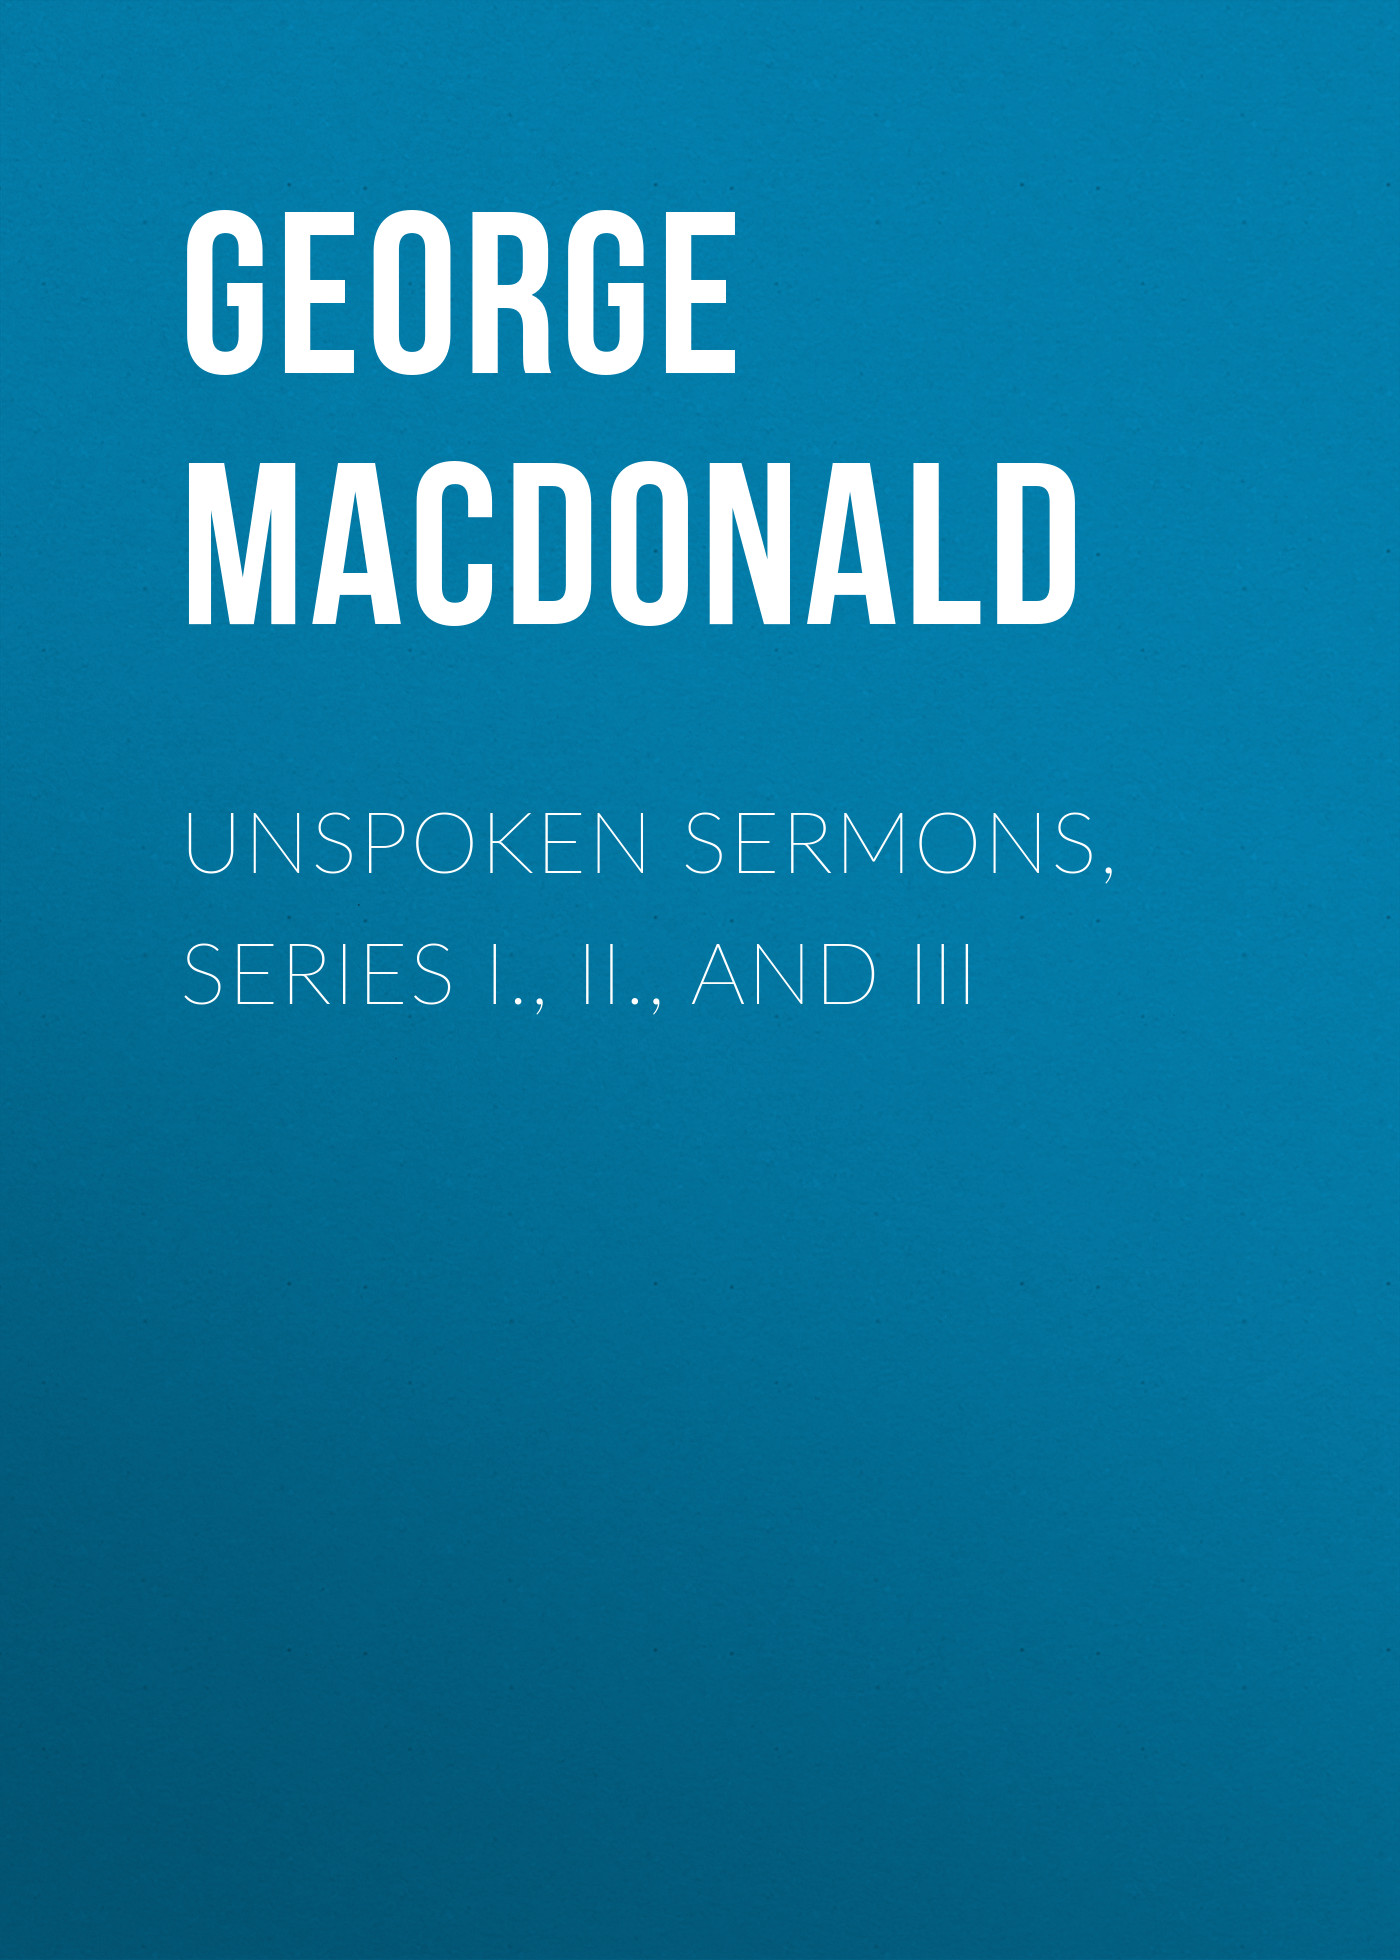 George MacDonald Unspoken Sermons, Series I., II., and III george macdonald weighed and wanting